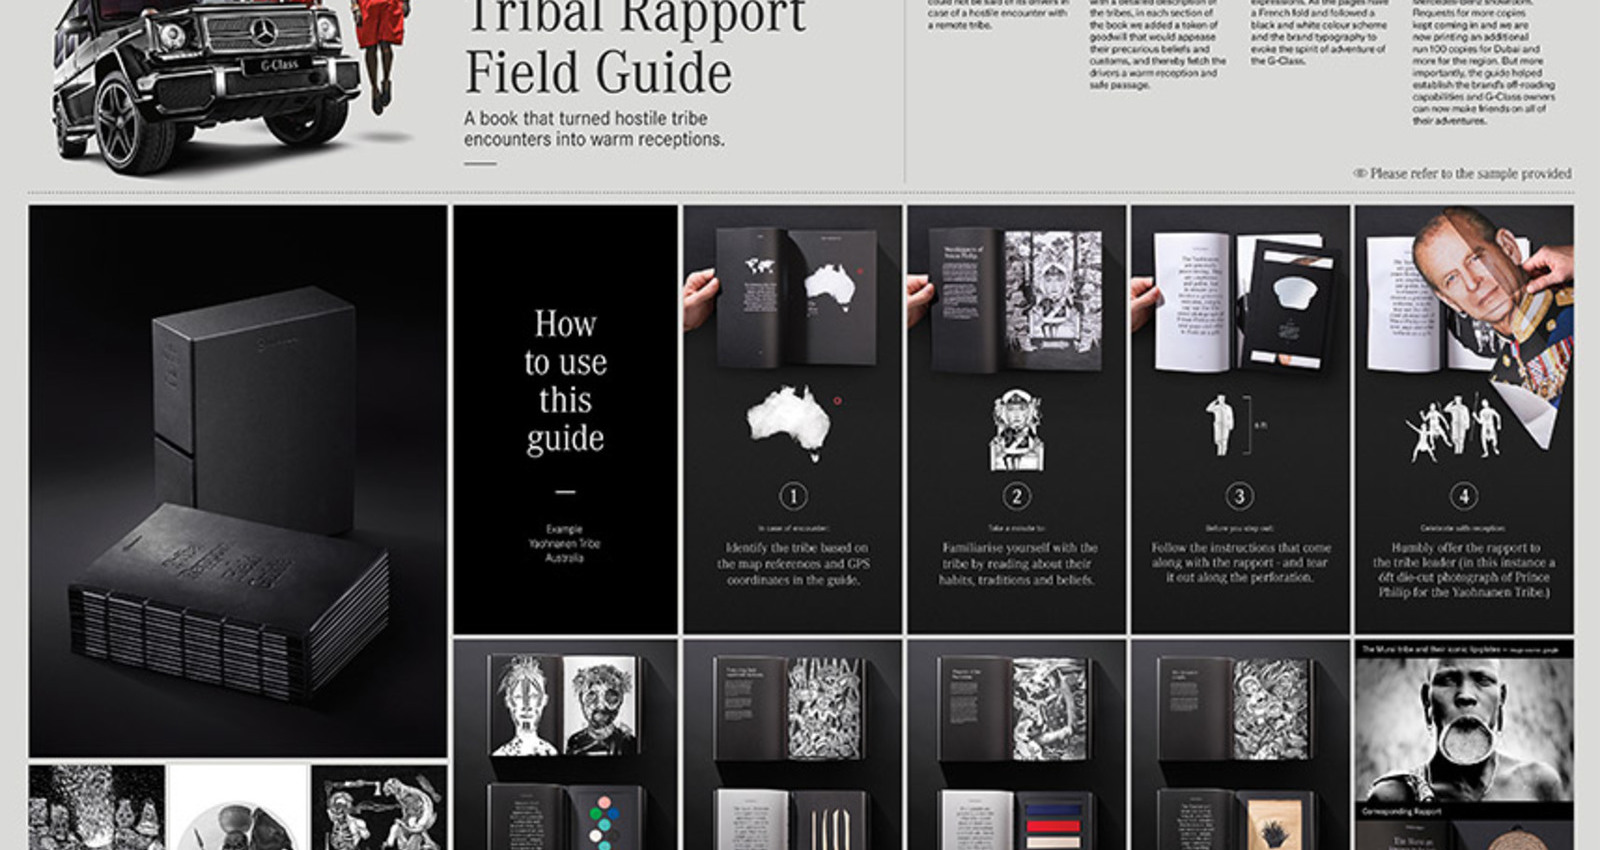 The Tribal Rapport Field Guide